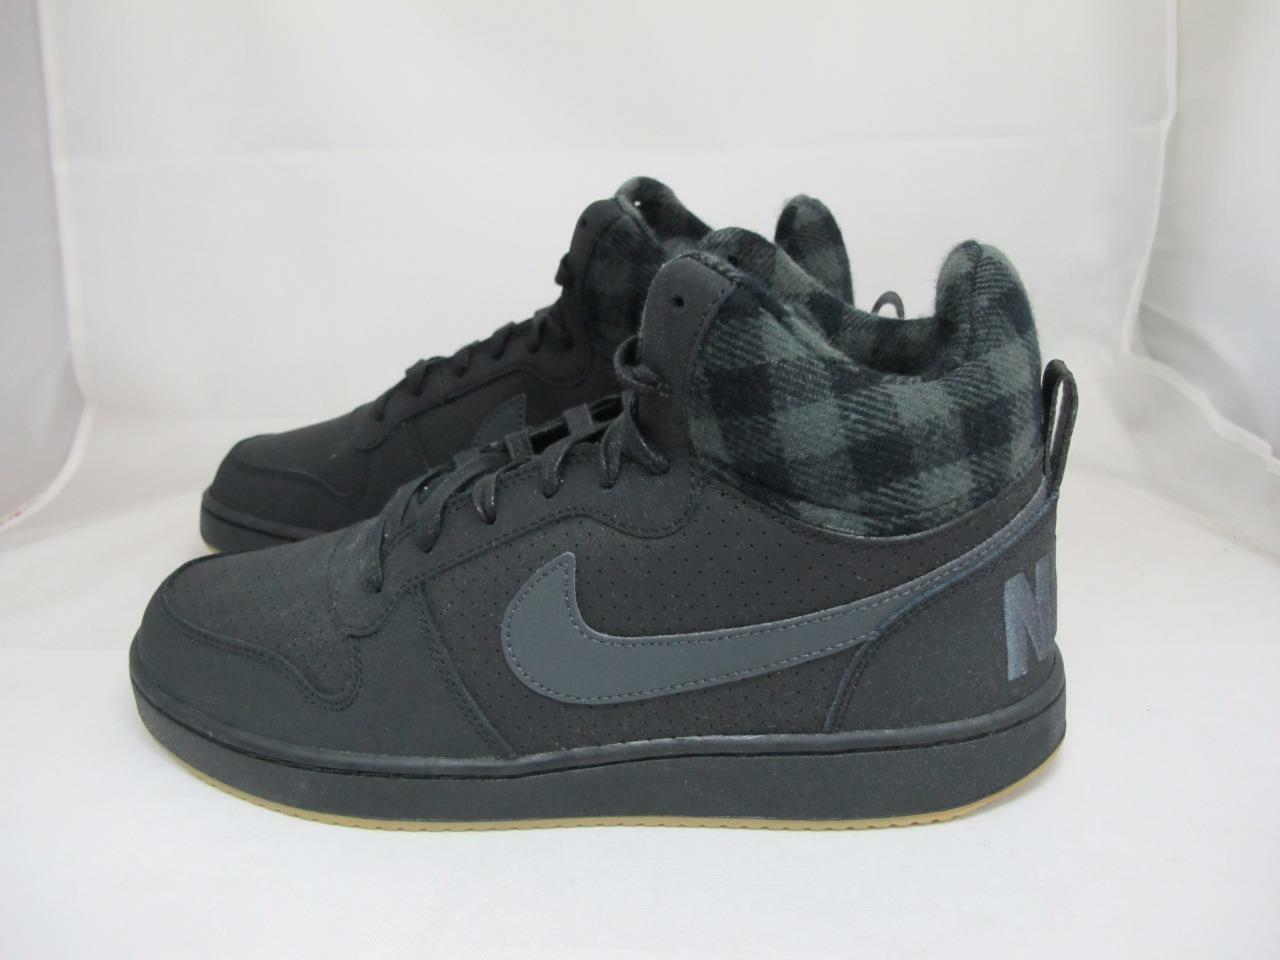 NEW MEN'S NIKE COURT BROUGH MID PREM 844884-002